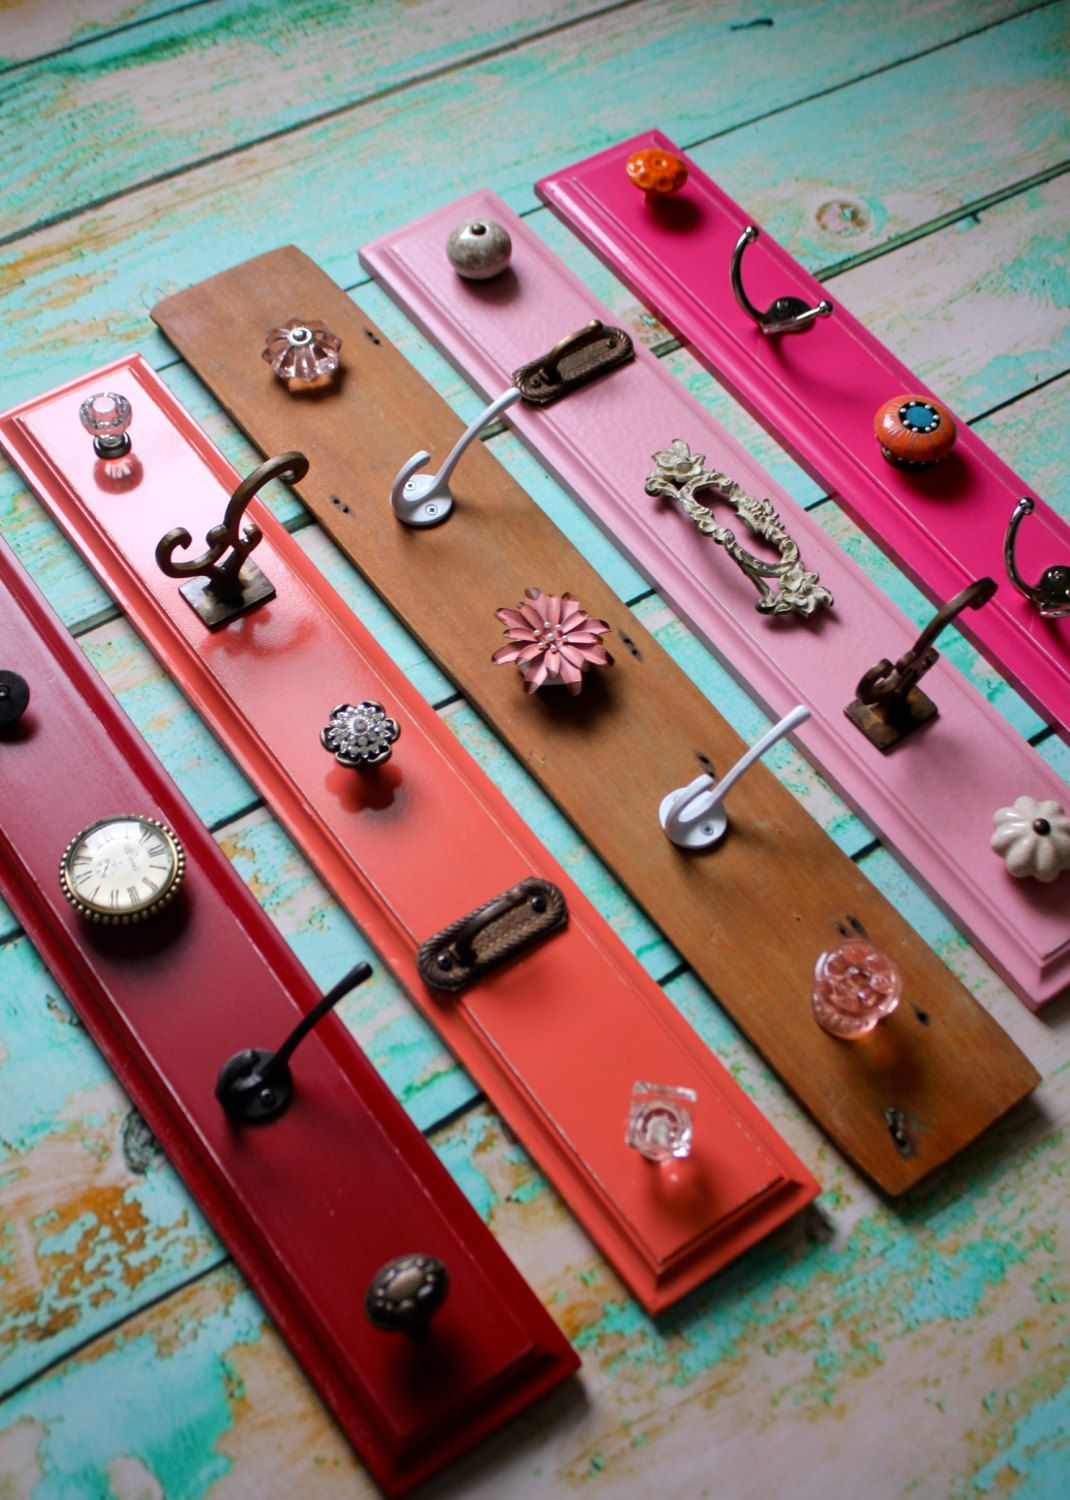 Storage knob Displays in Pinks, Red, Coral, and Shabby Chic Wood ...